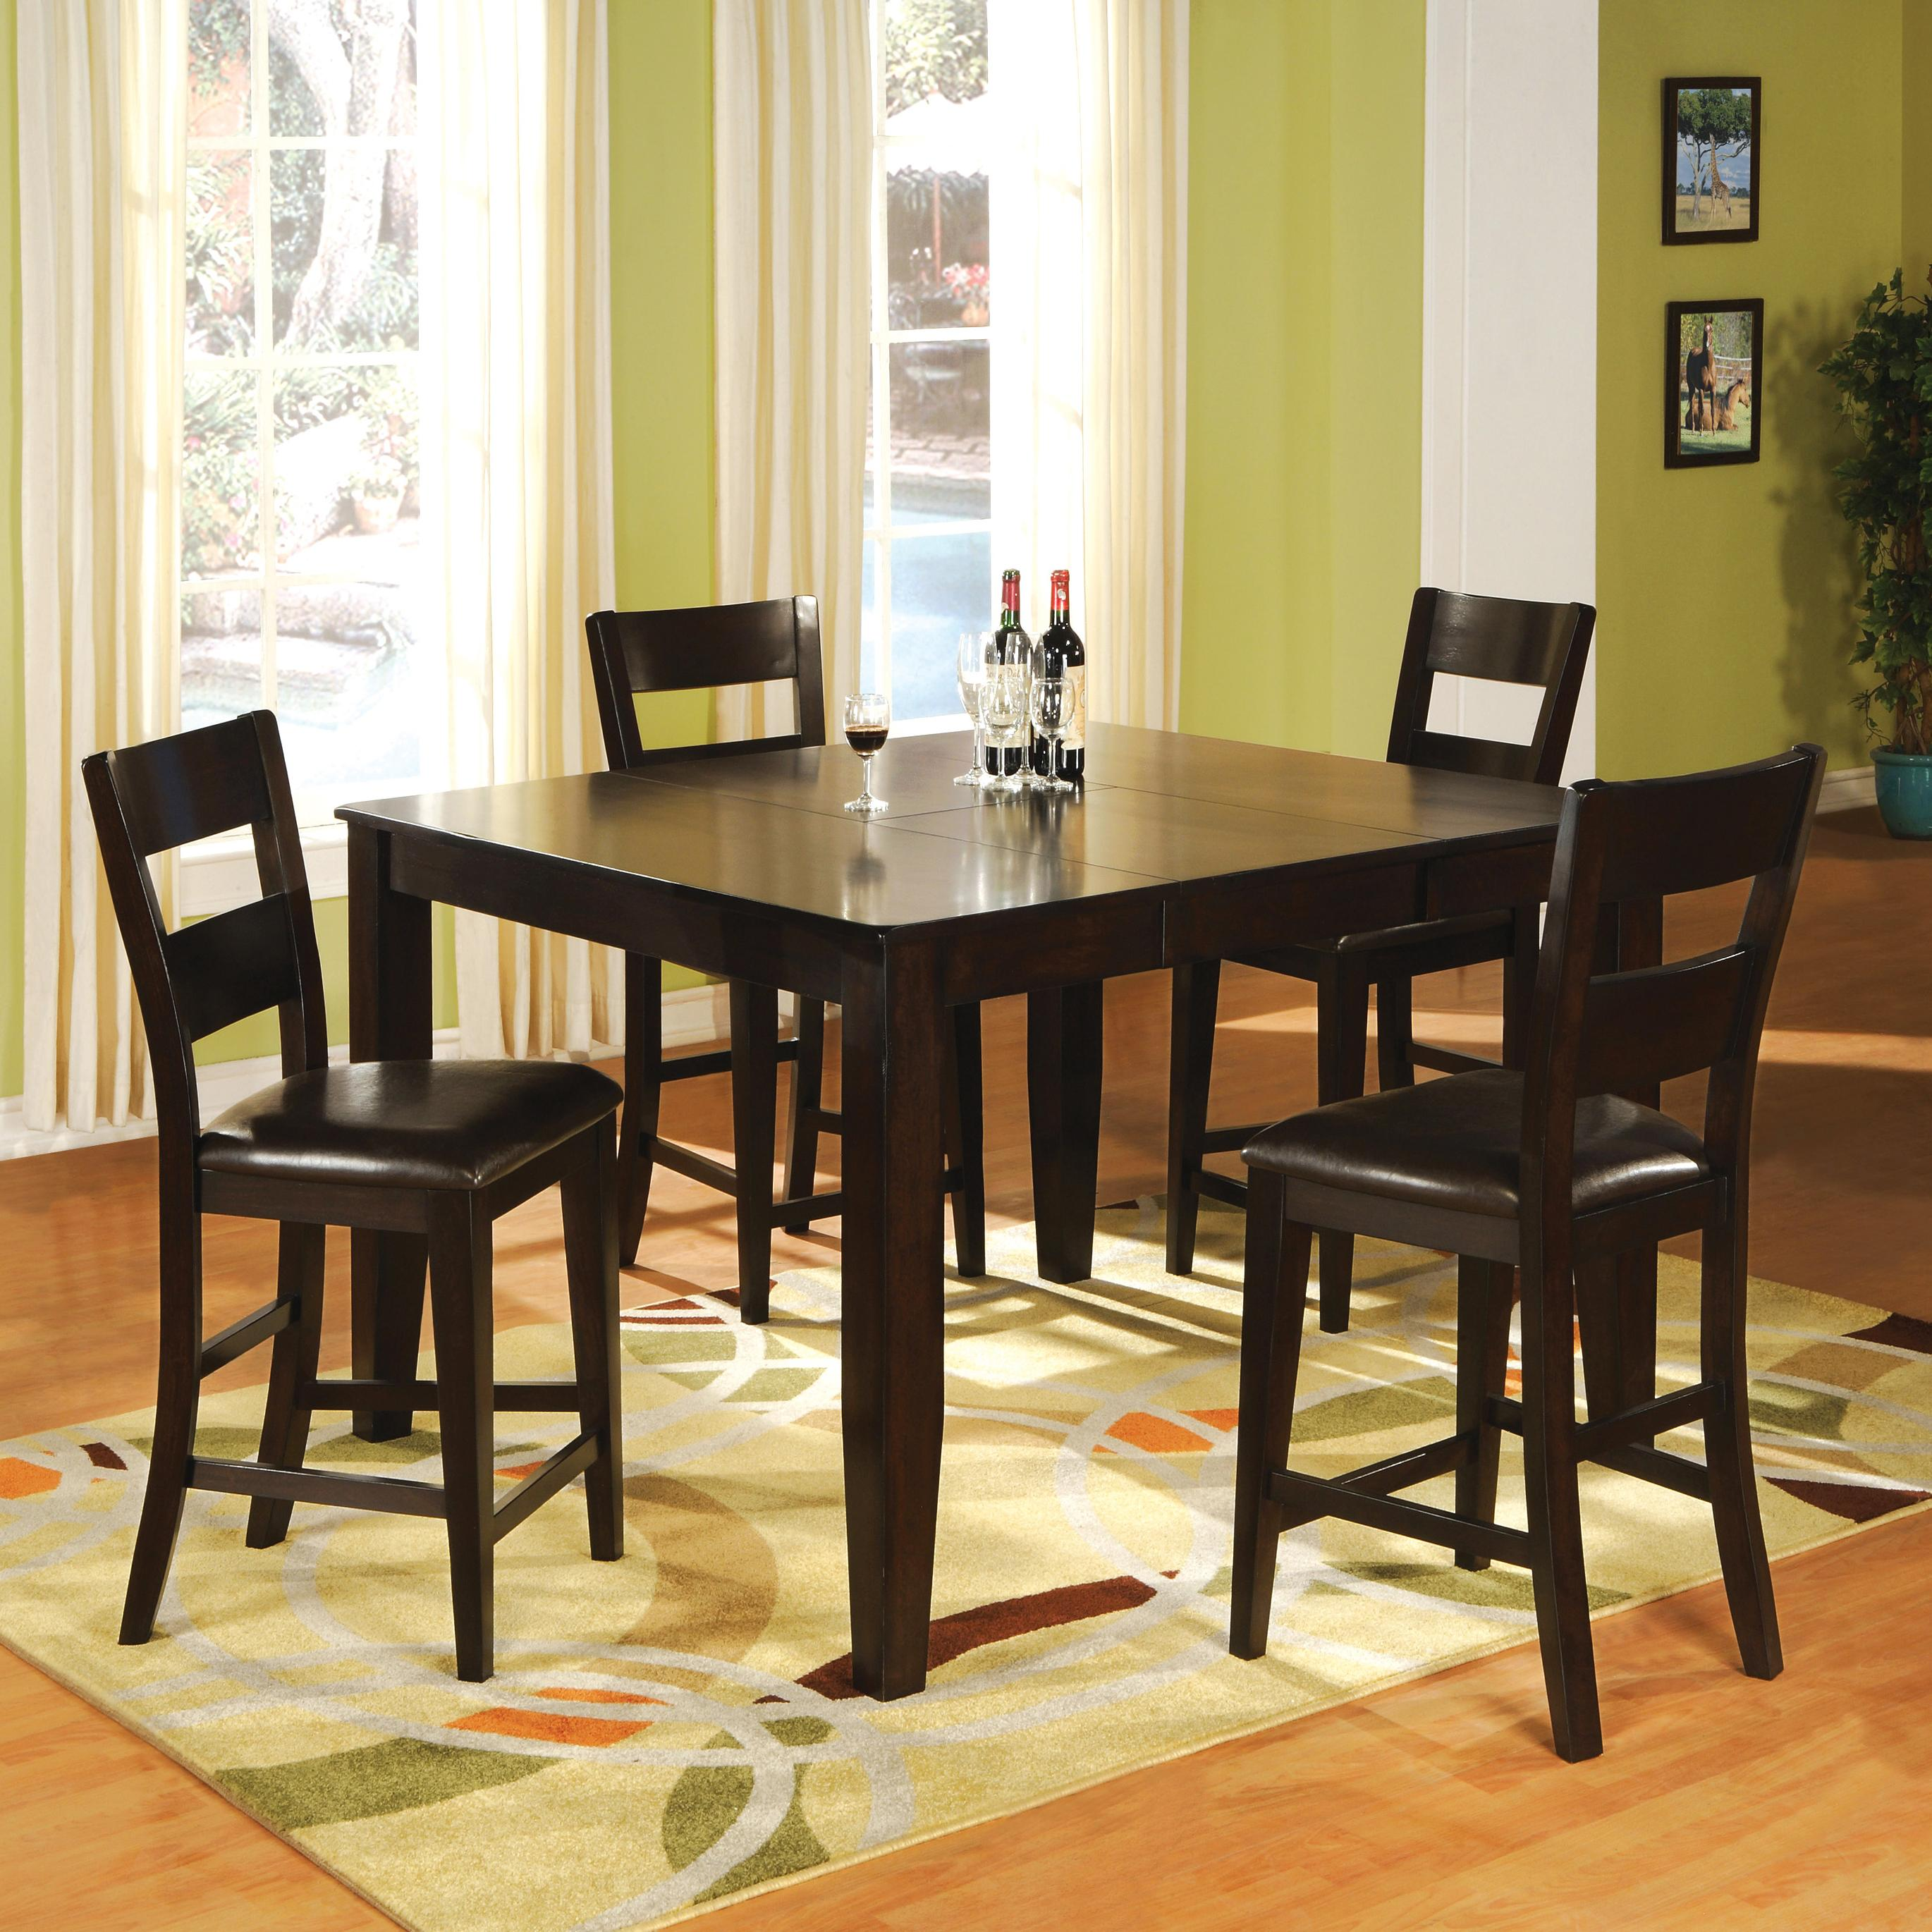 holland house bend 5 piece square top table and ladder back chair pub dining set miskelly. Black Bedroom Furniture Sets. Home Design Ideas